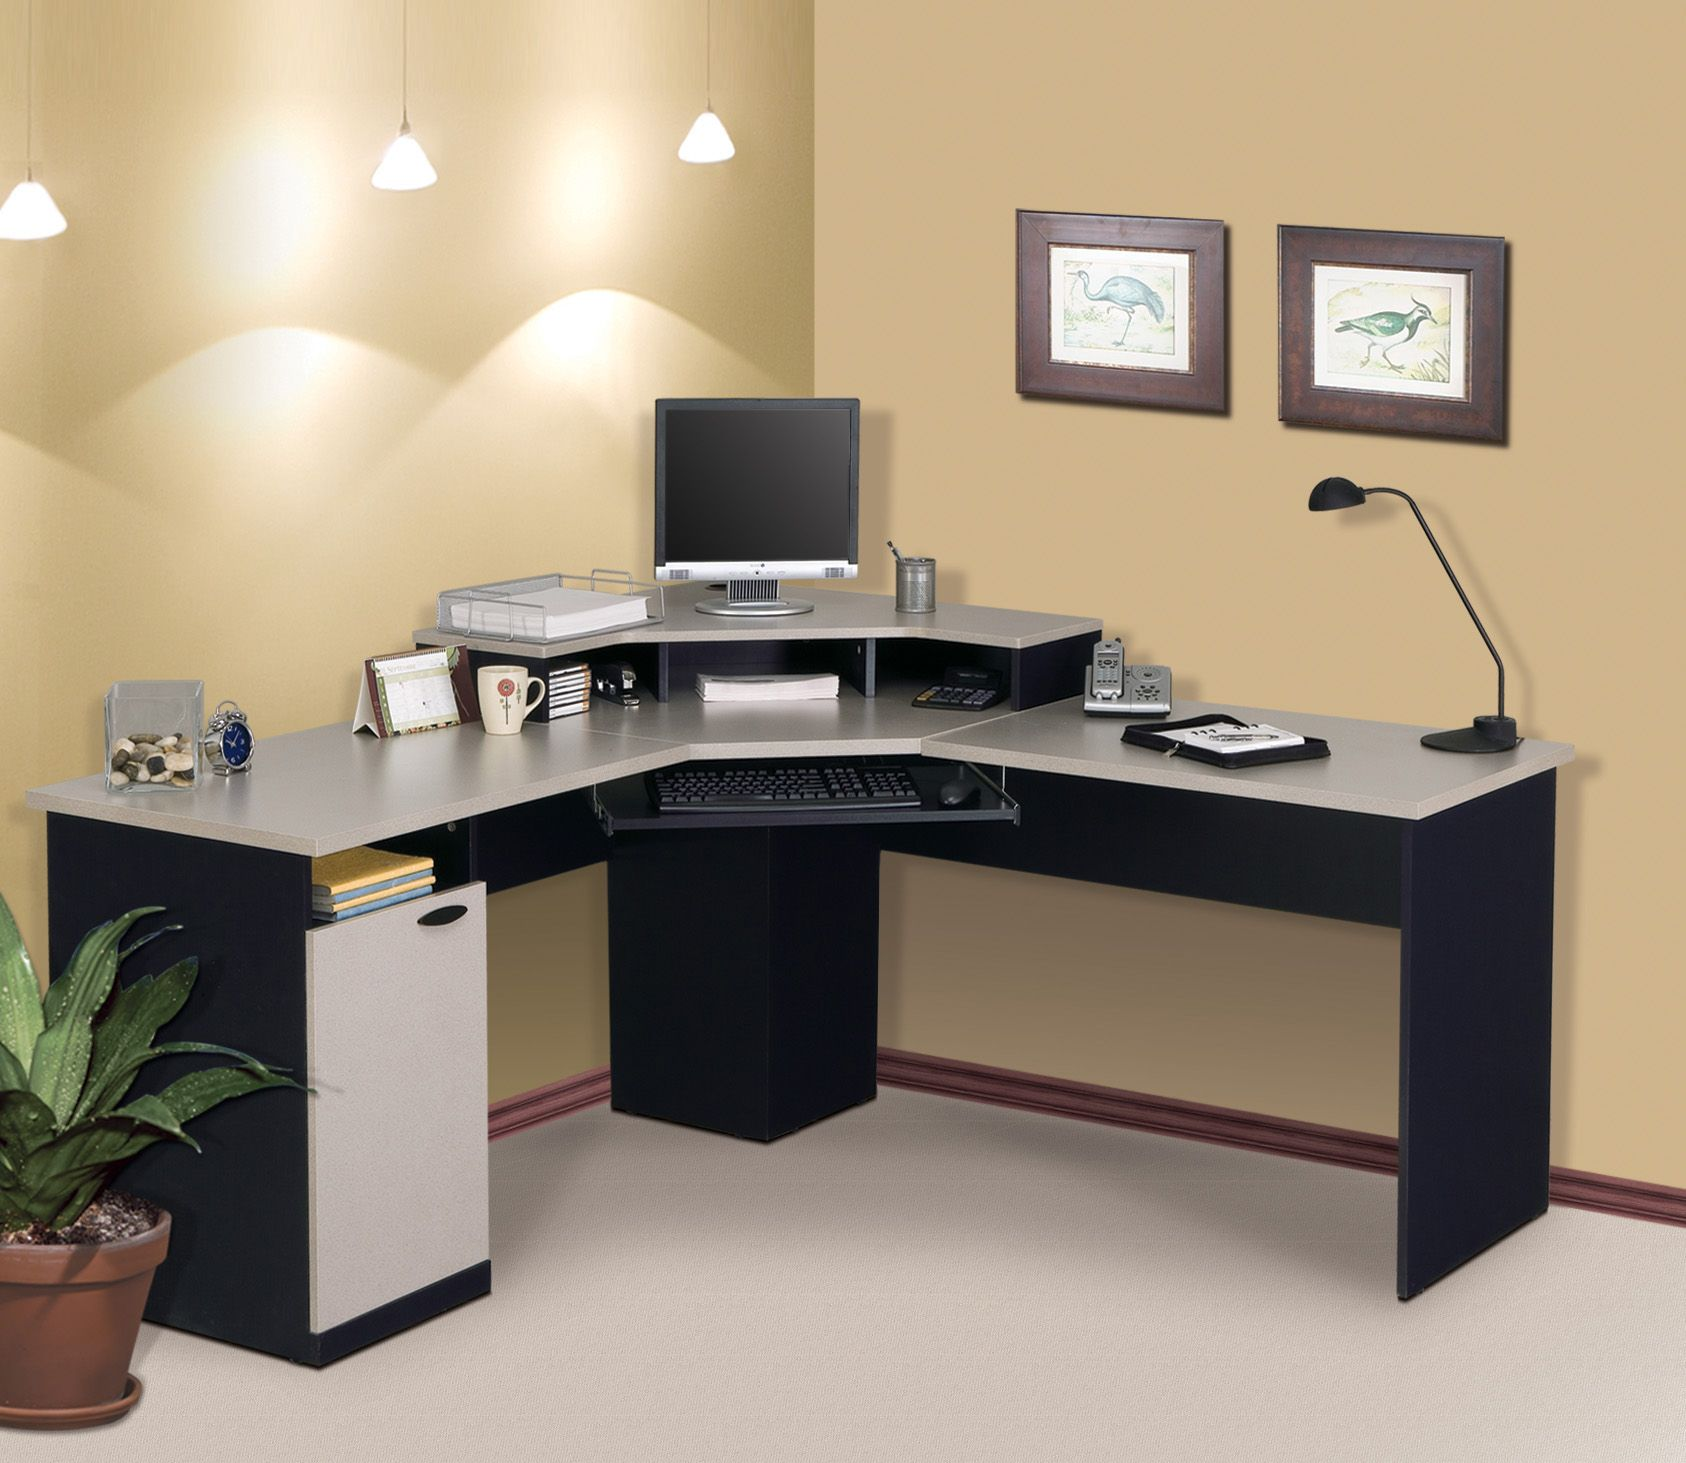 Best Desk Design painting of cheap corner desks: budget friendly and room